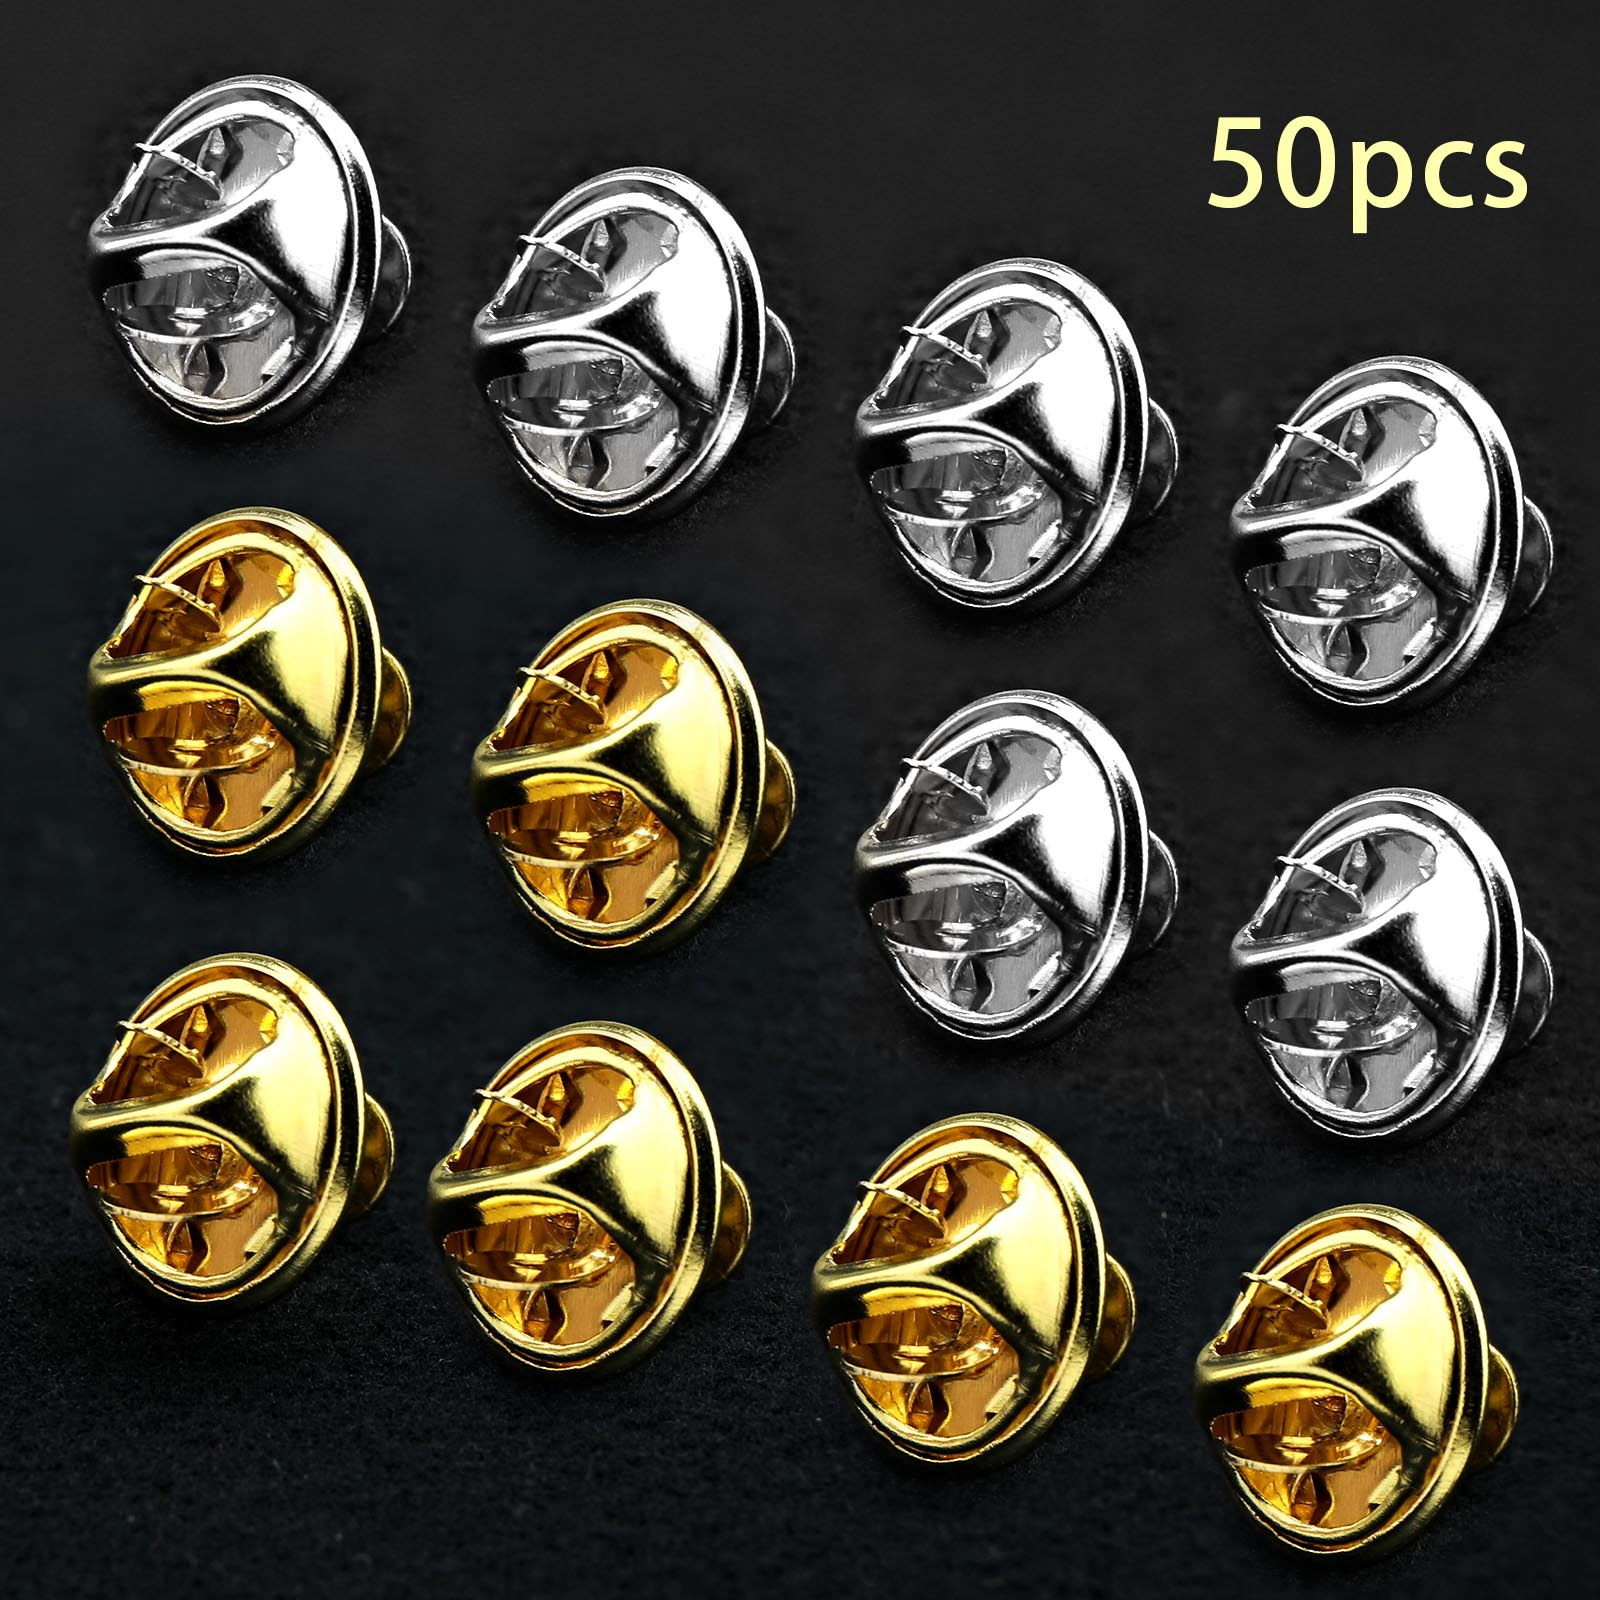 50pcs total gold silver each 25pcs locking pin keeper backs no tools required